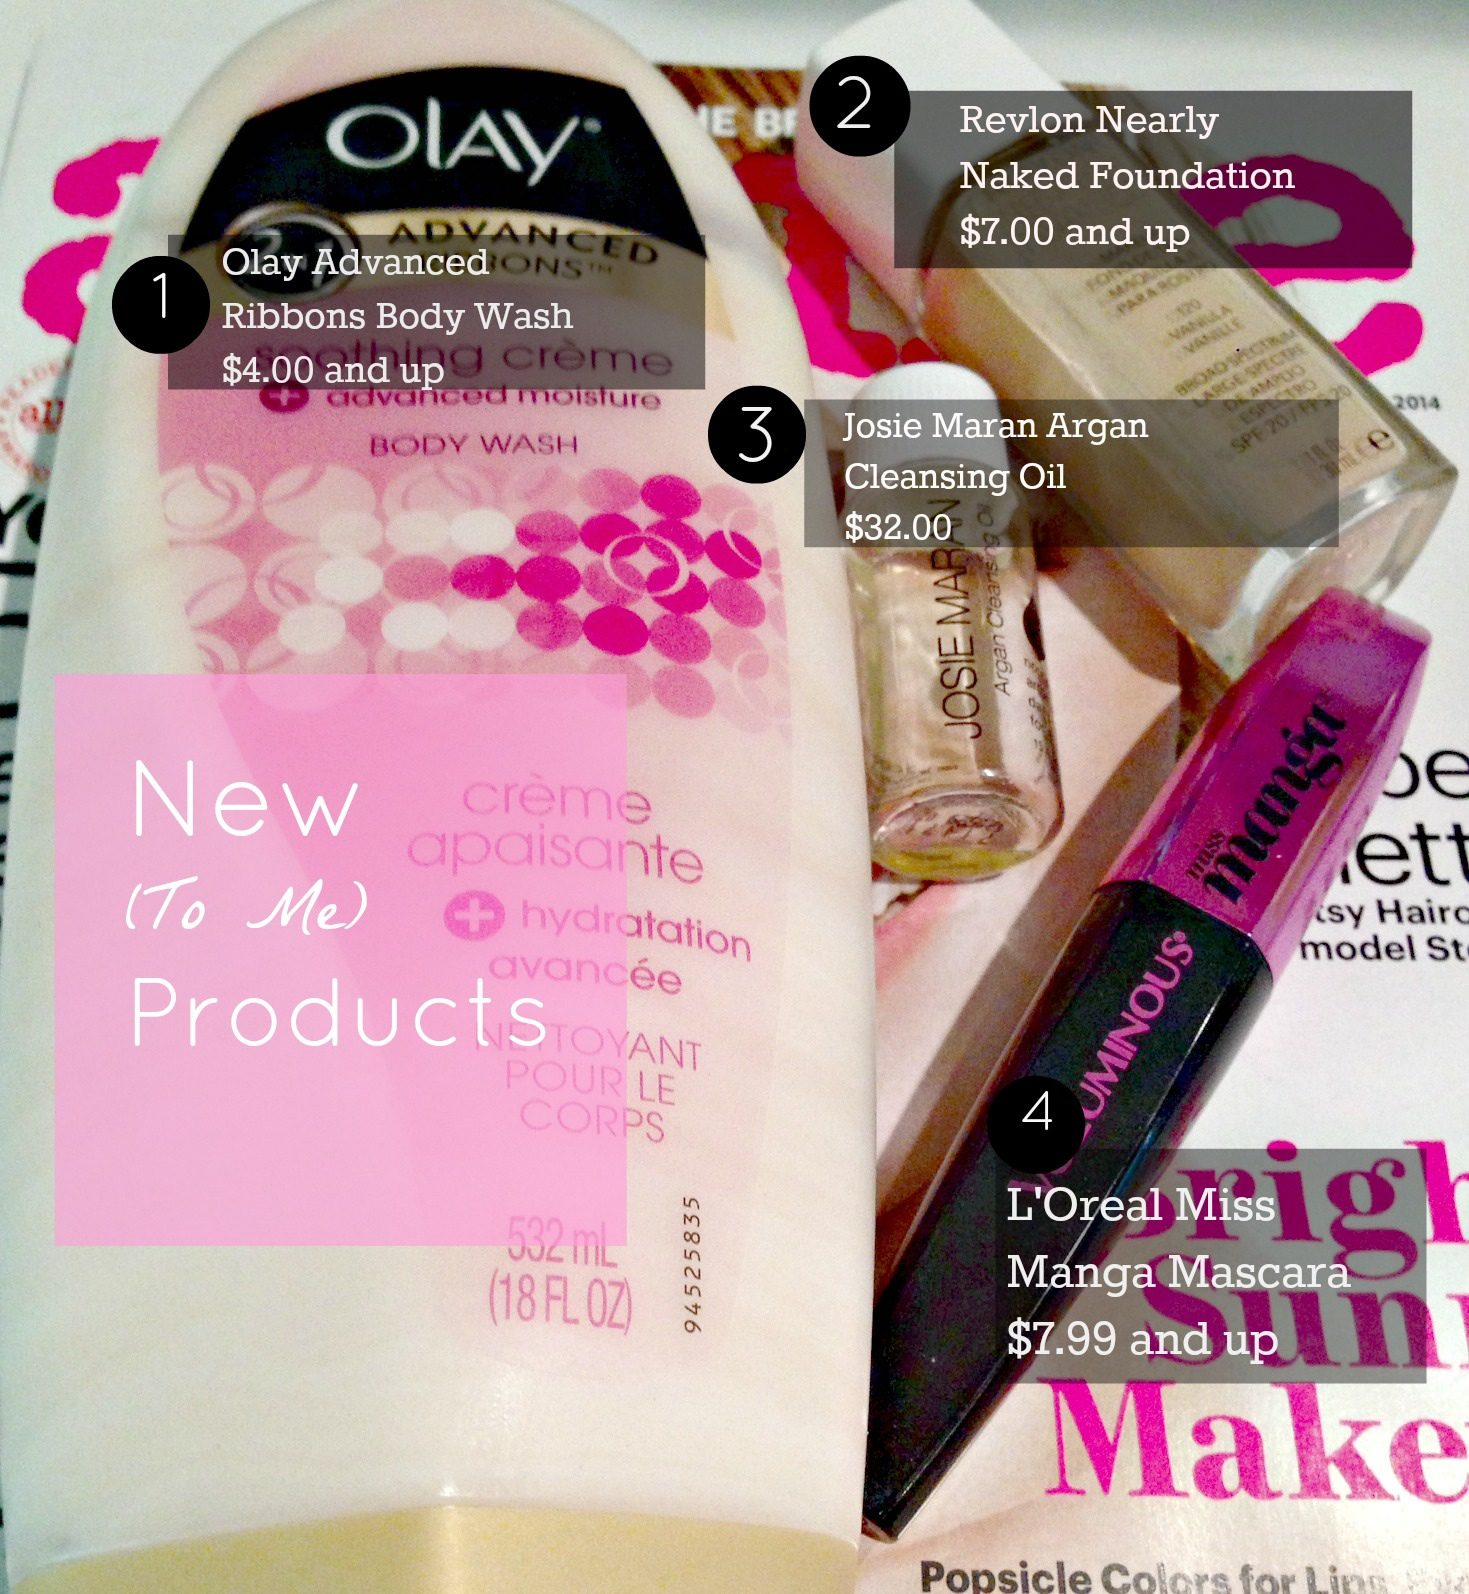 New (to me) Products….